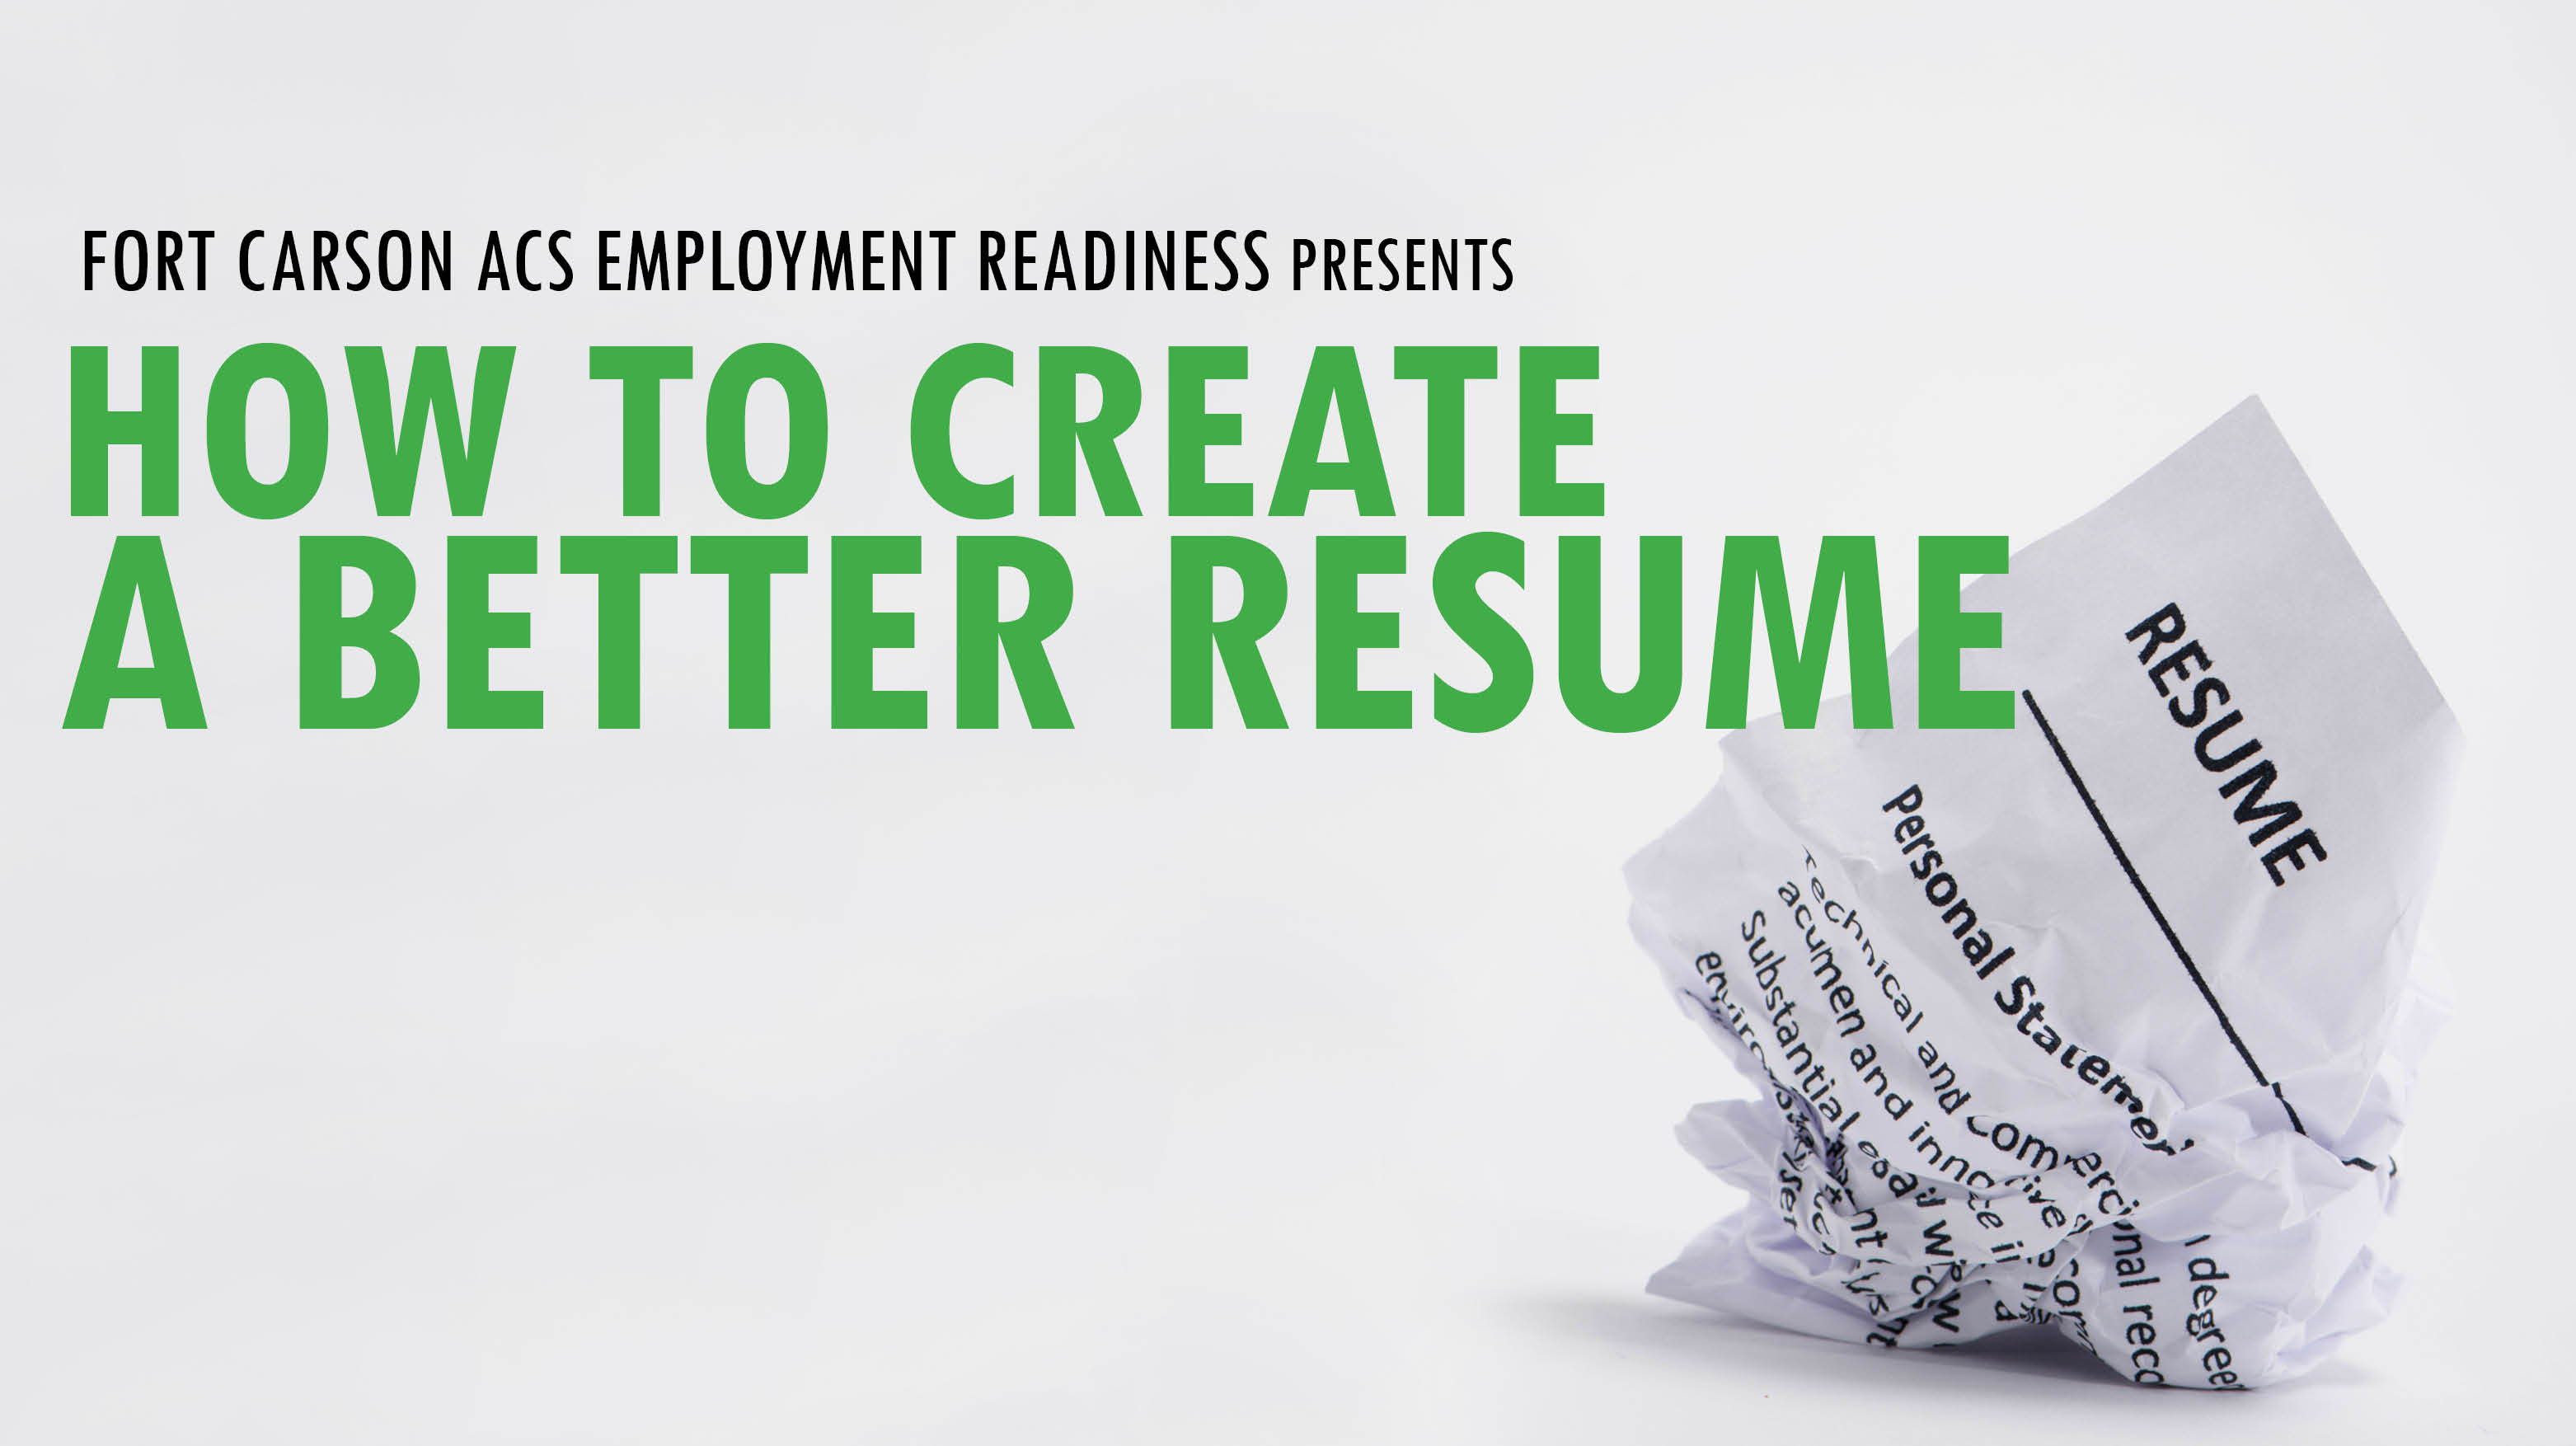 How to Create a Better Resume